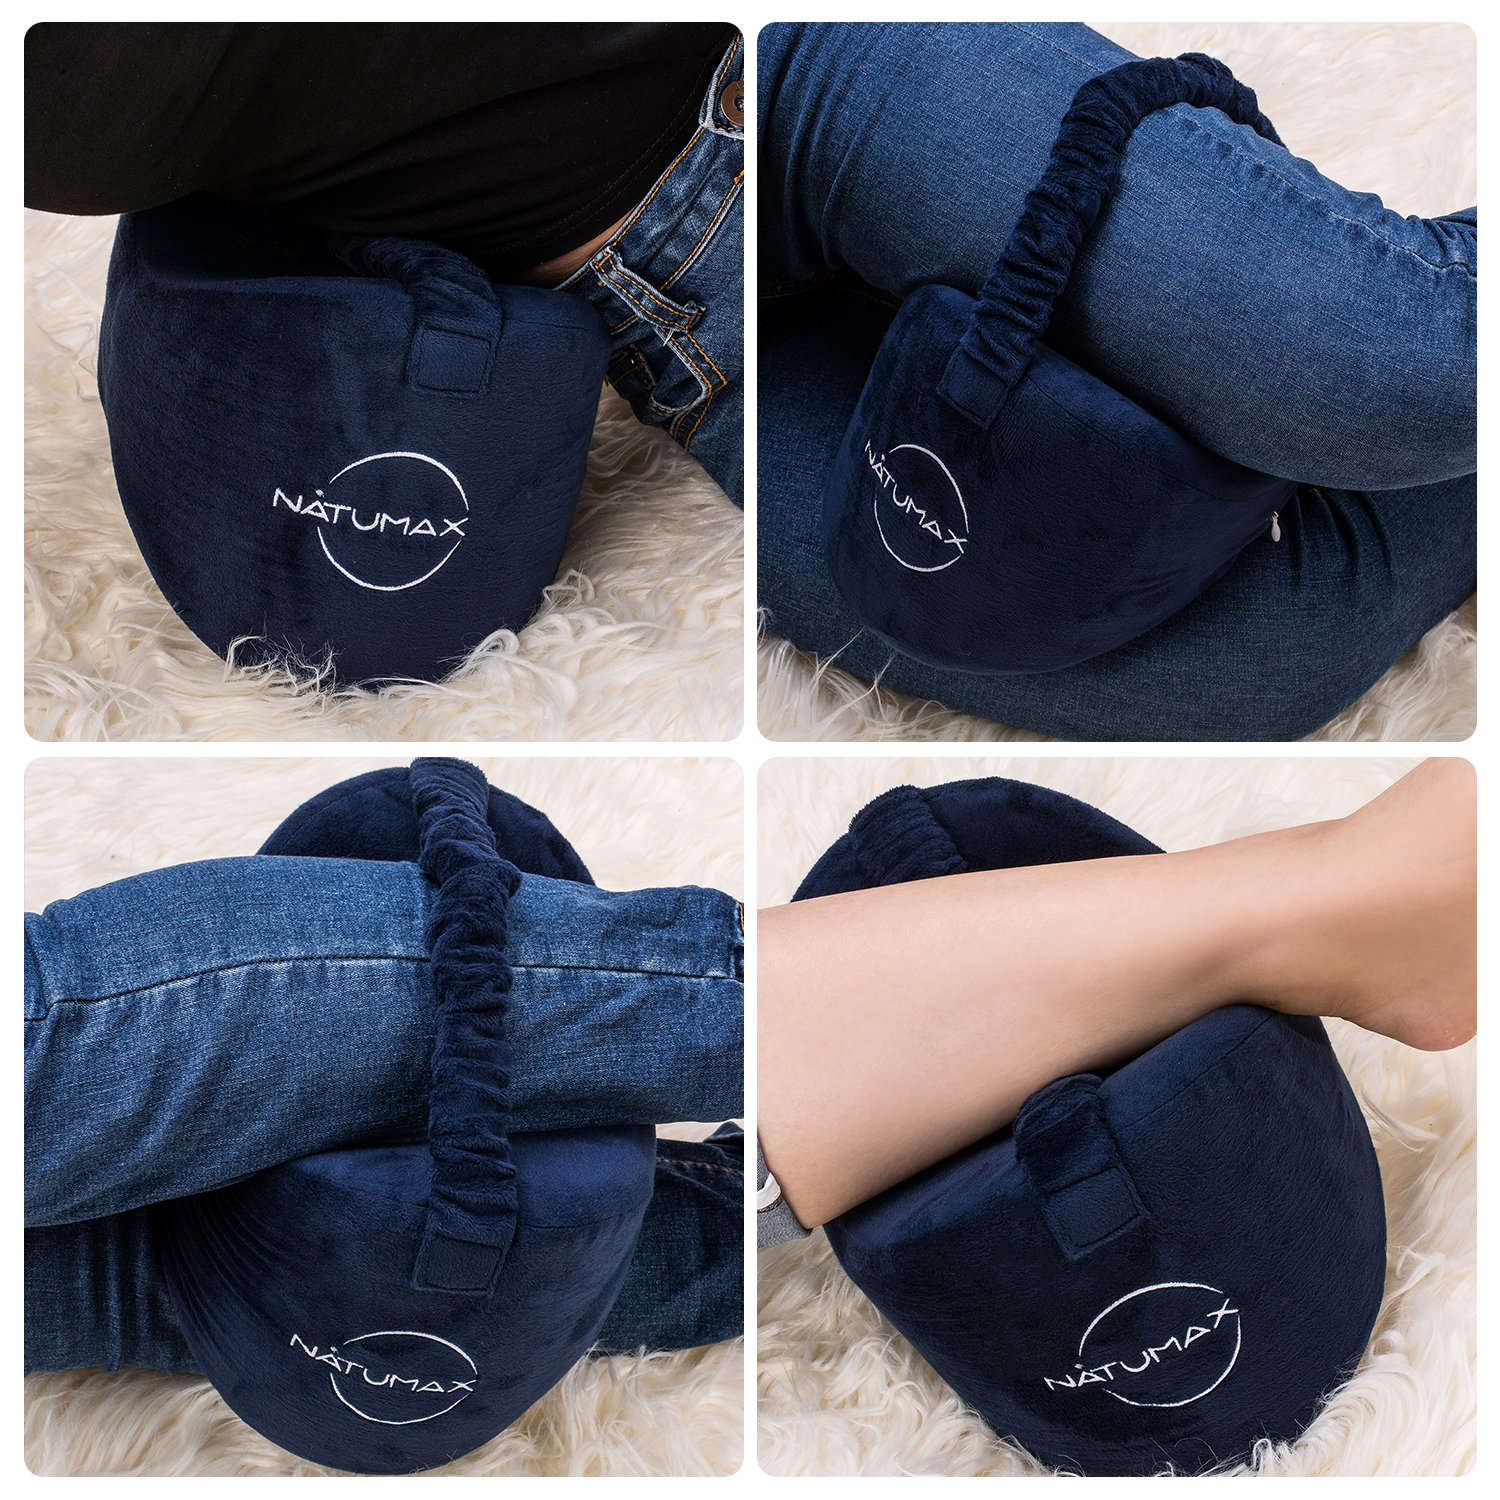 Natumax Knee Pillow For Side Sleepers Sciatica Pain